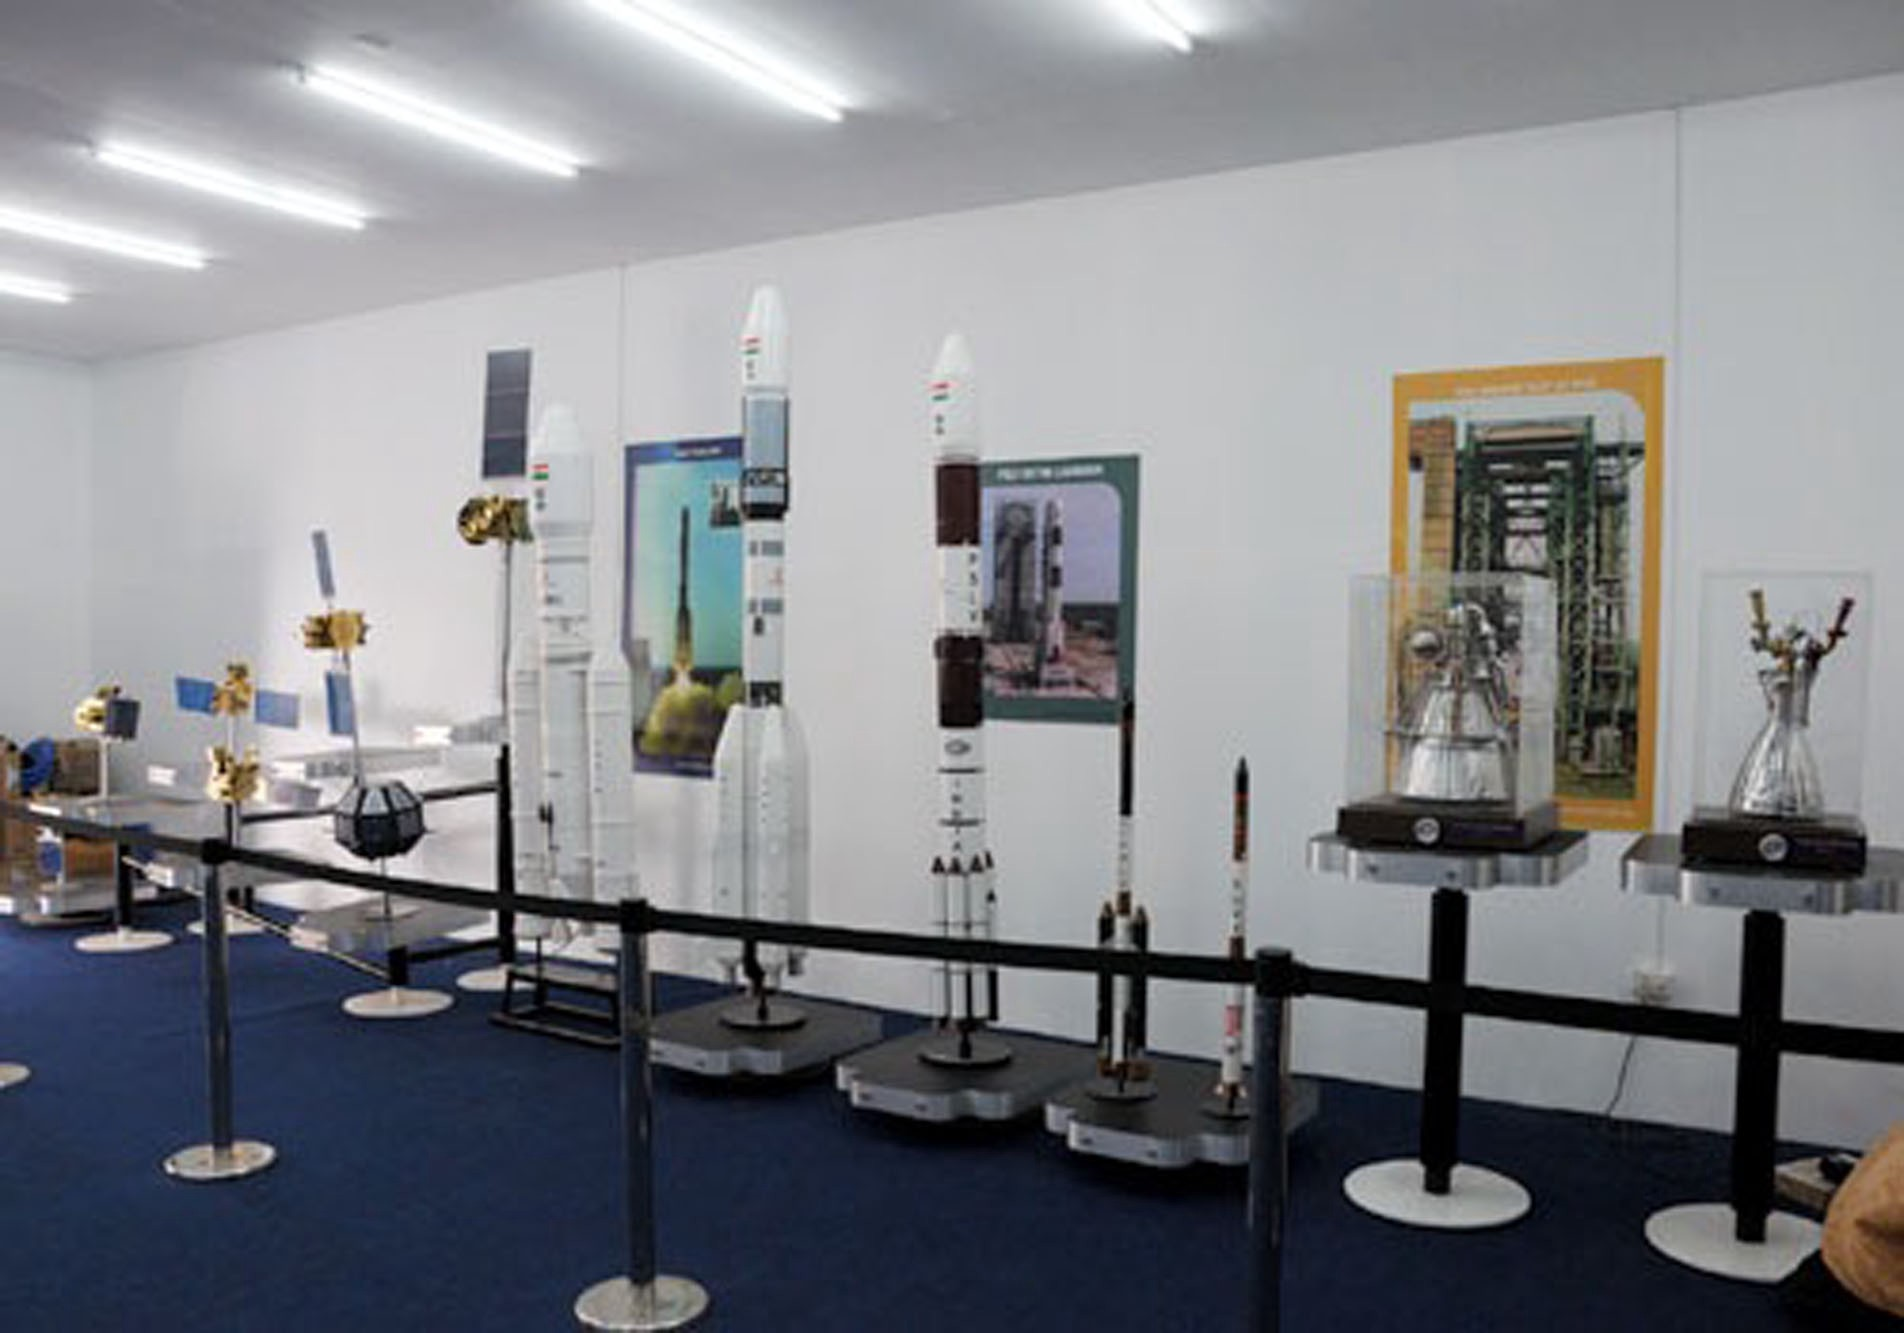 WCTC 2010 - Exhibits by ISRO